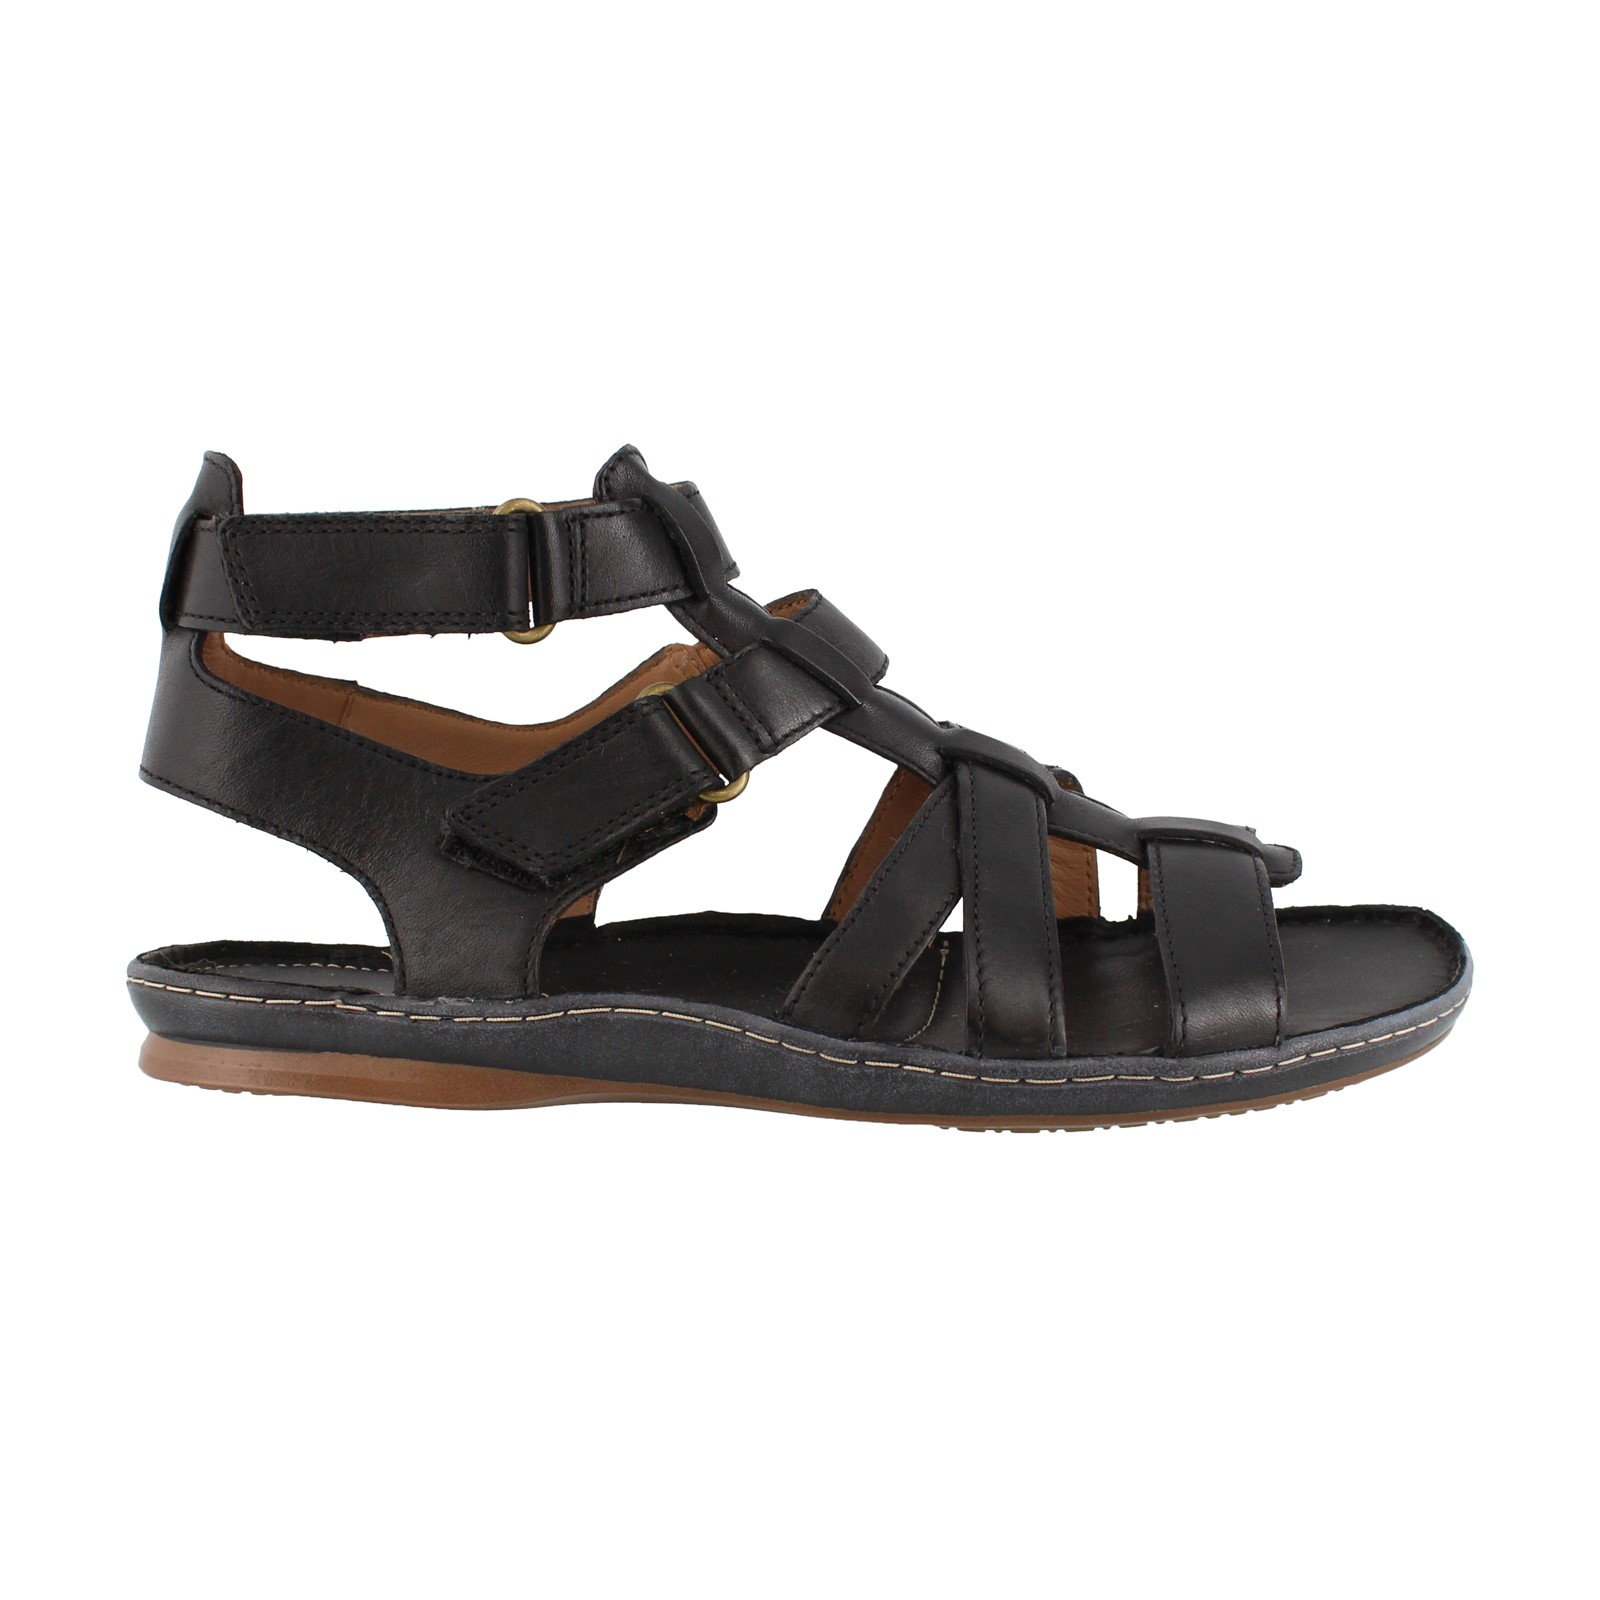 Women's Clarks, Sarla Choir Sandals